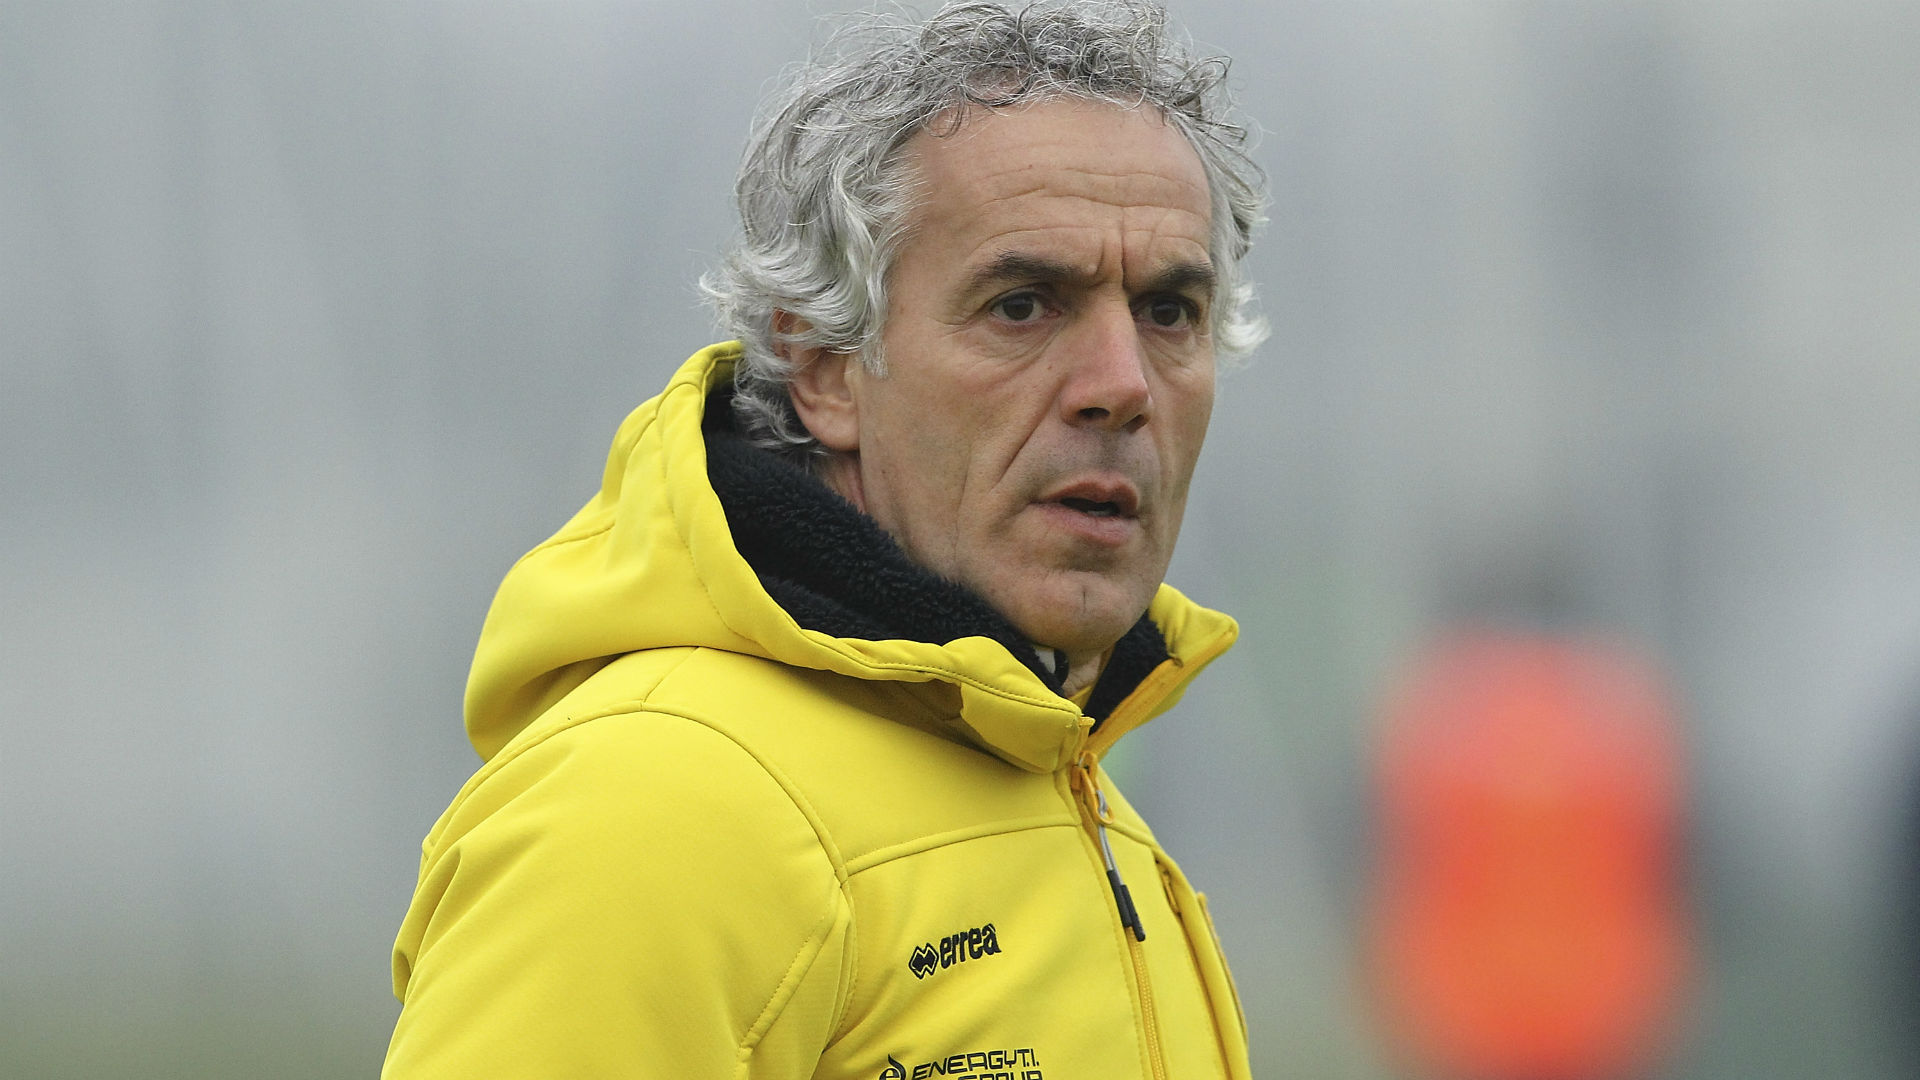 Donadoni refuses to rule out Milan move